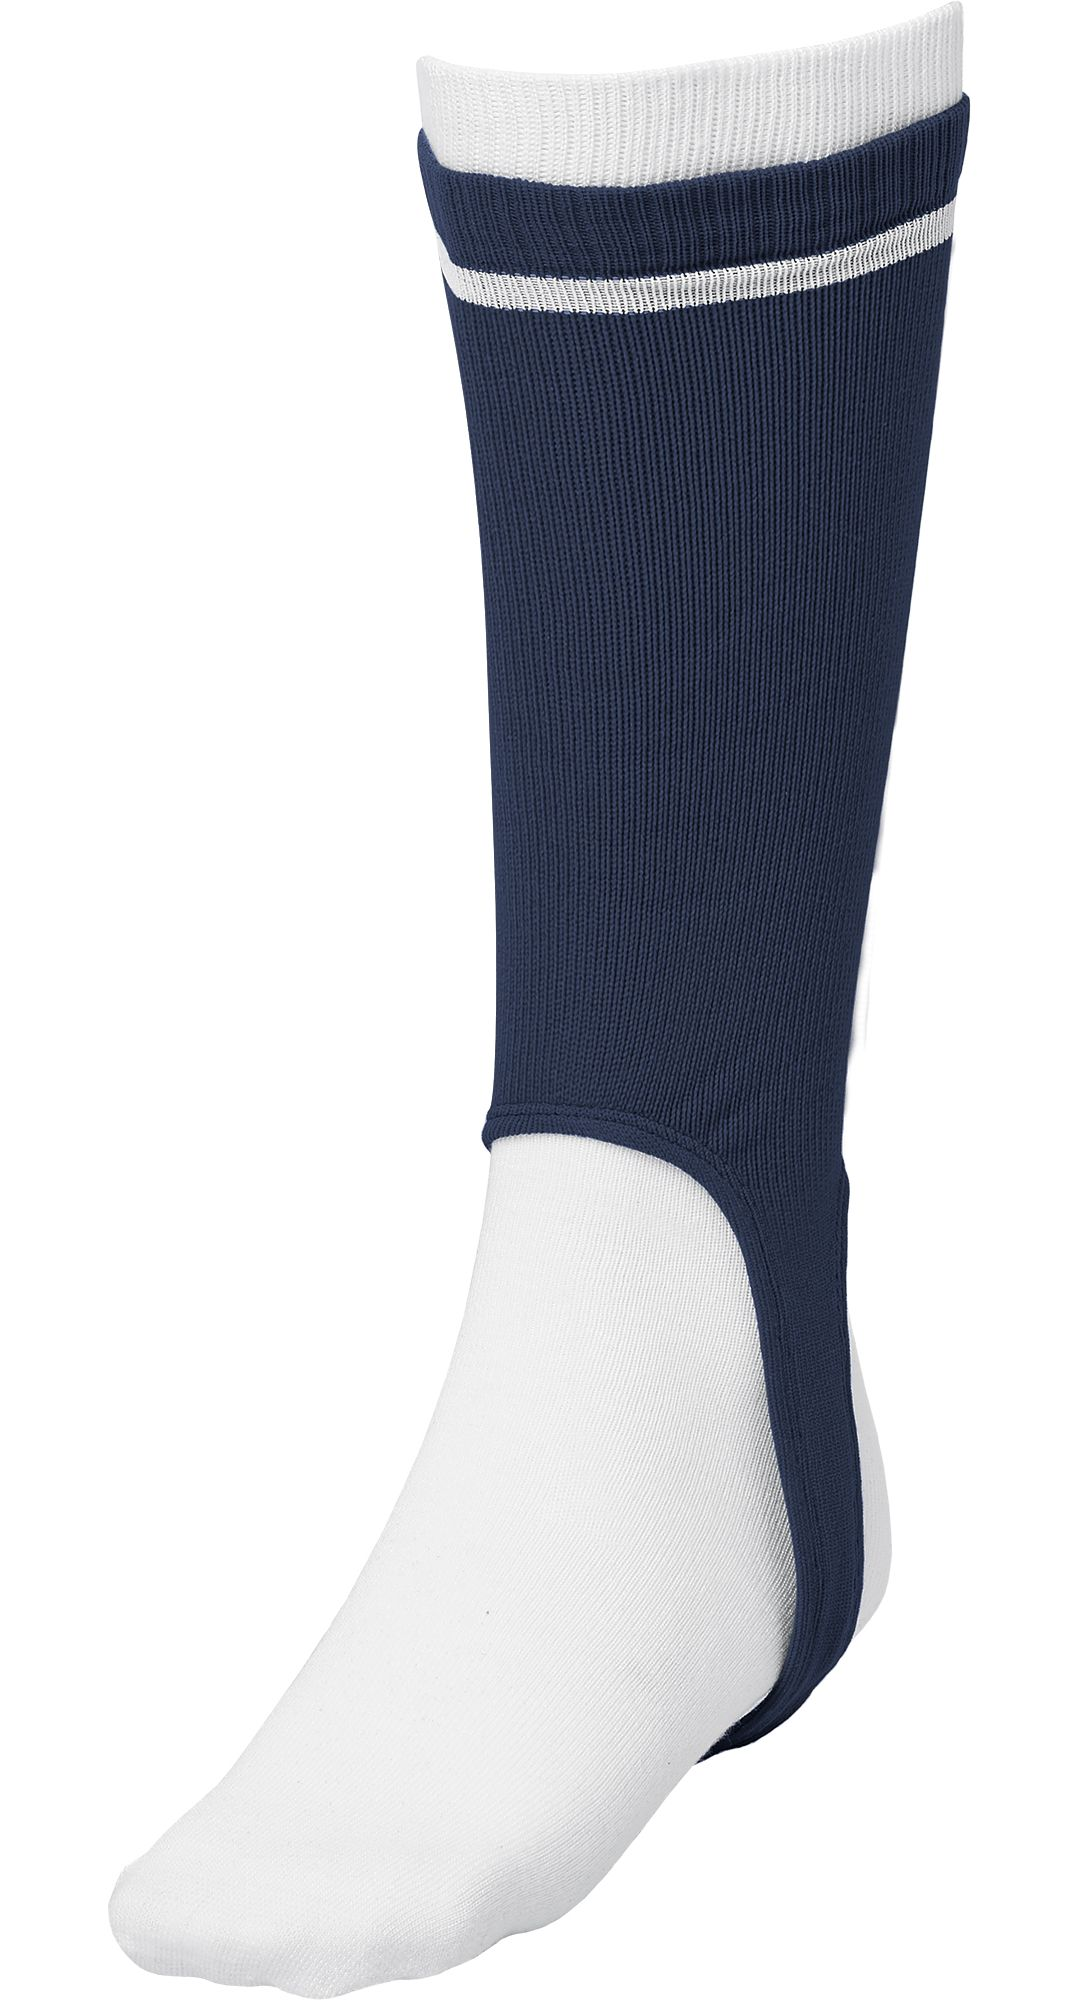 b8a0926aab43e3 Louisville Slugger Stirrup and Sanitary Baseball Socks Combo Pack ...